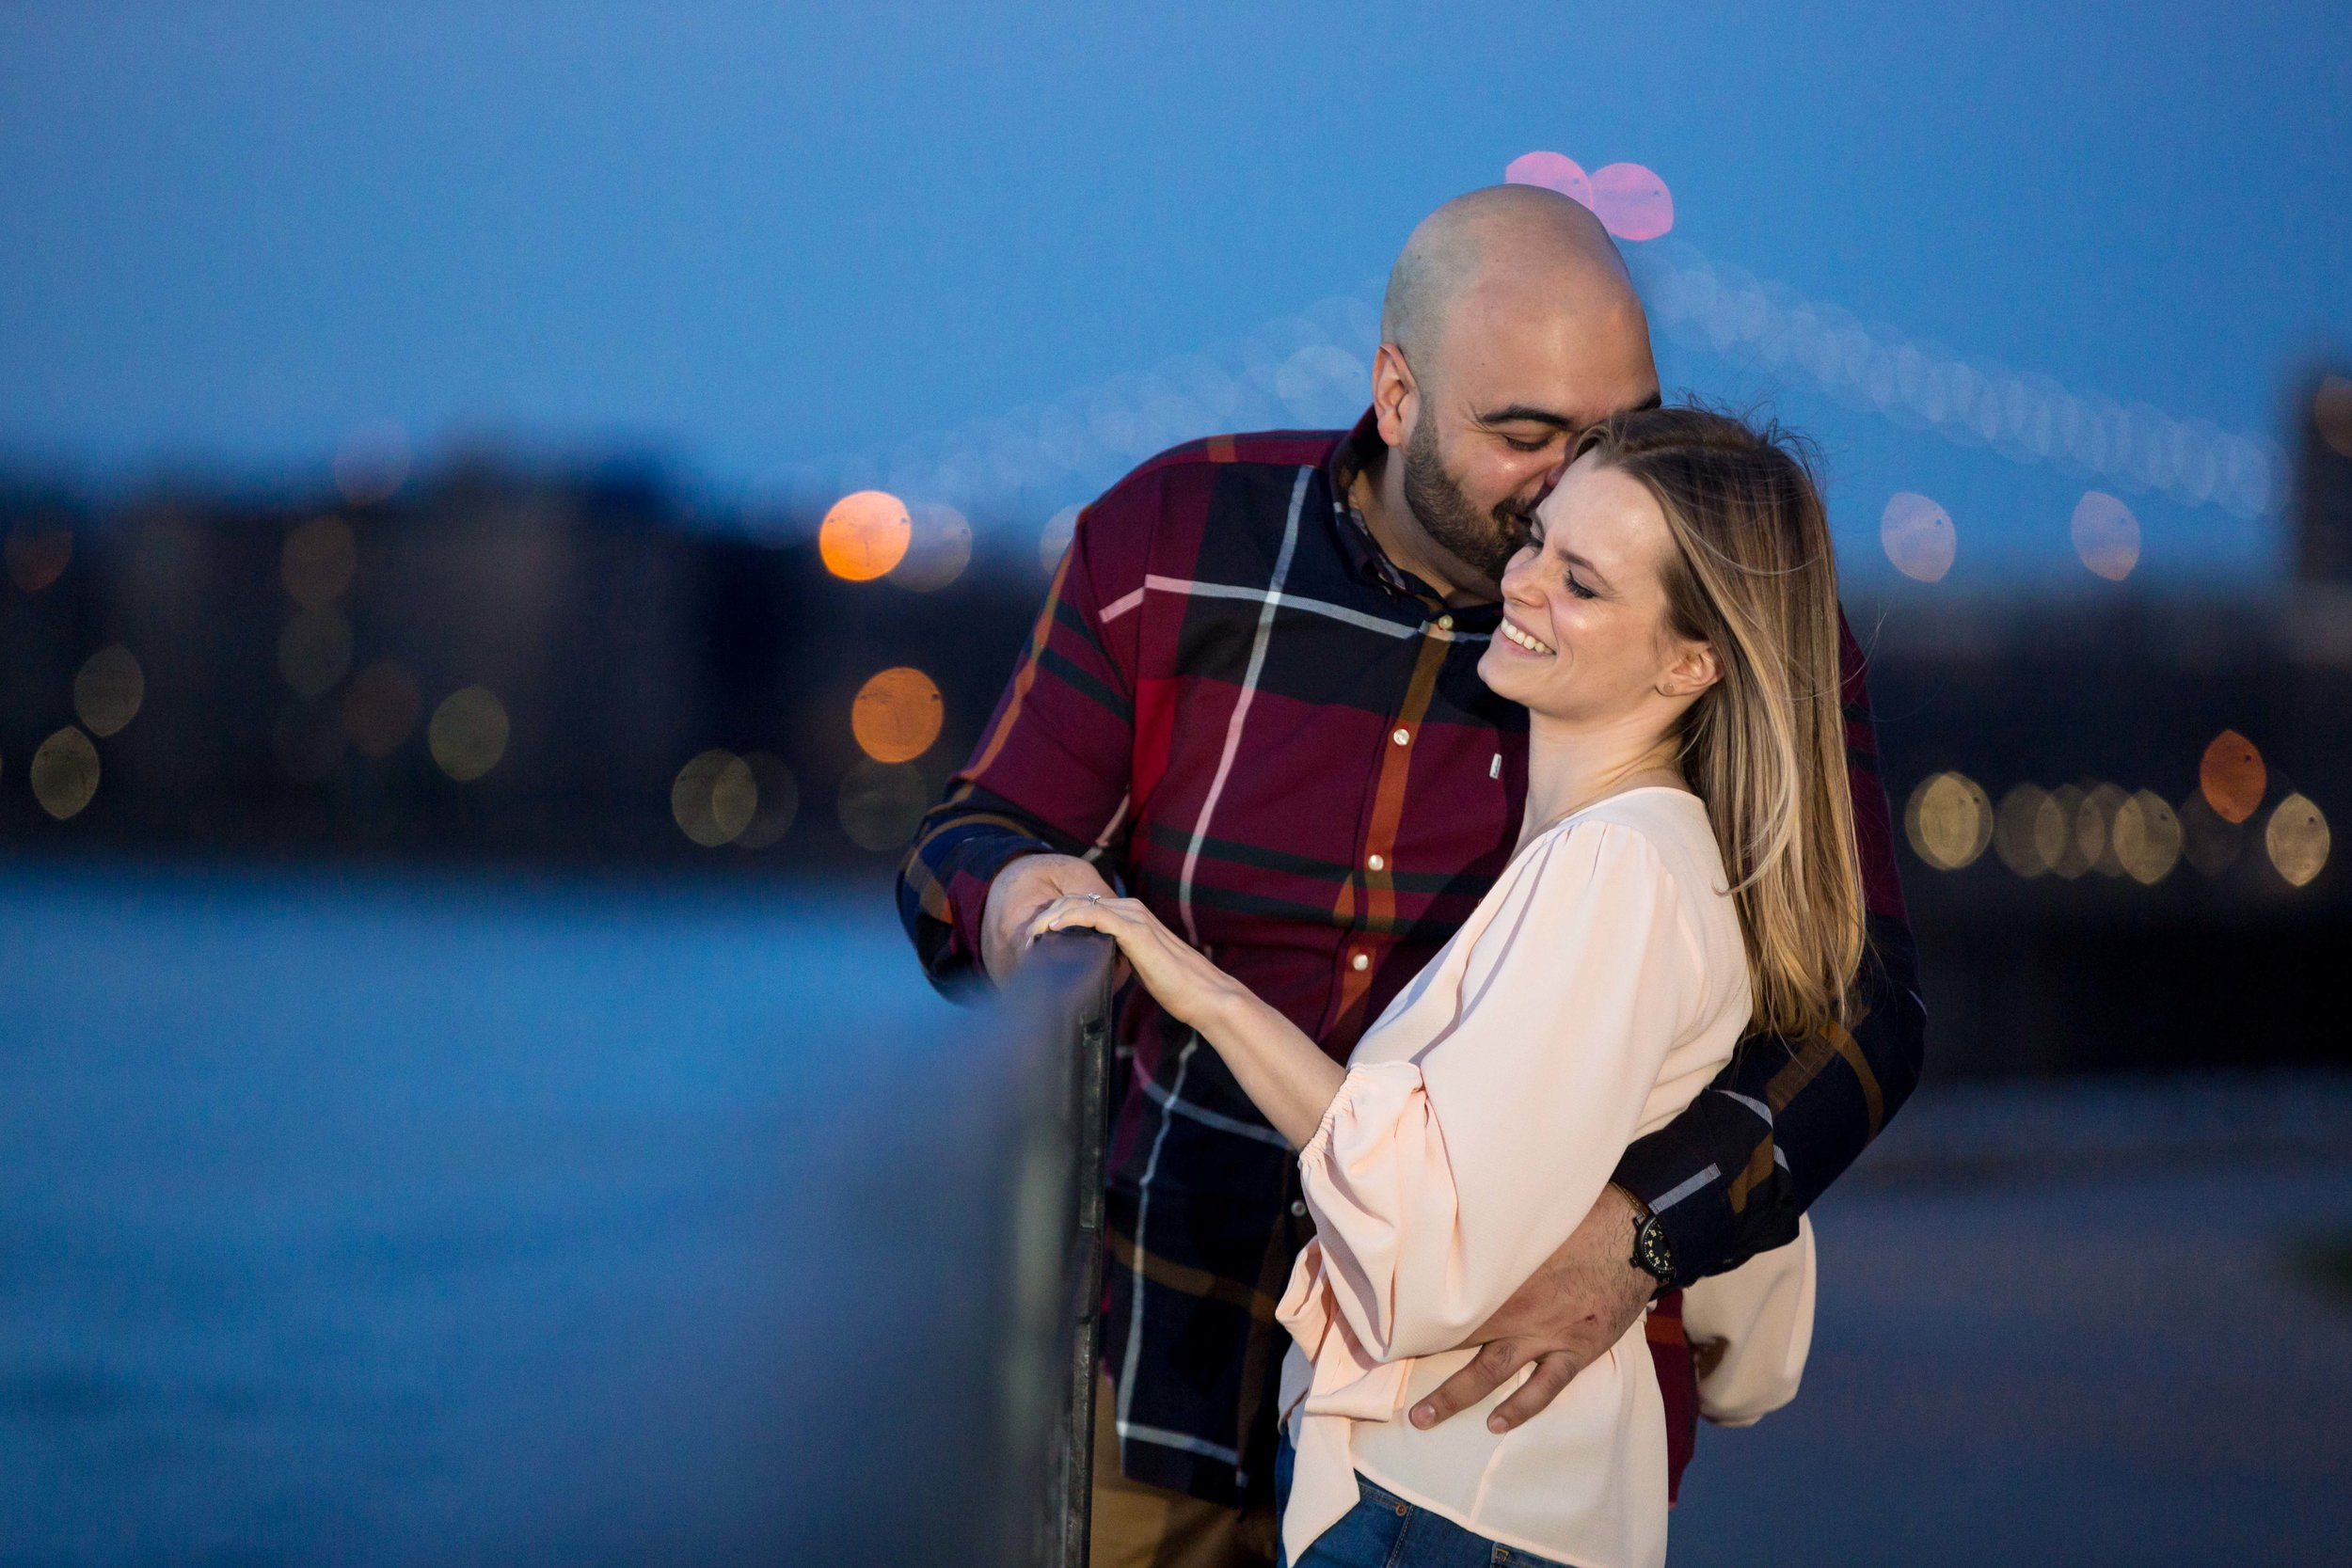 Astoria Engagement Photo Session Shoot Rainey Park Wedding Photographer Queens NYC New York City